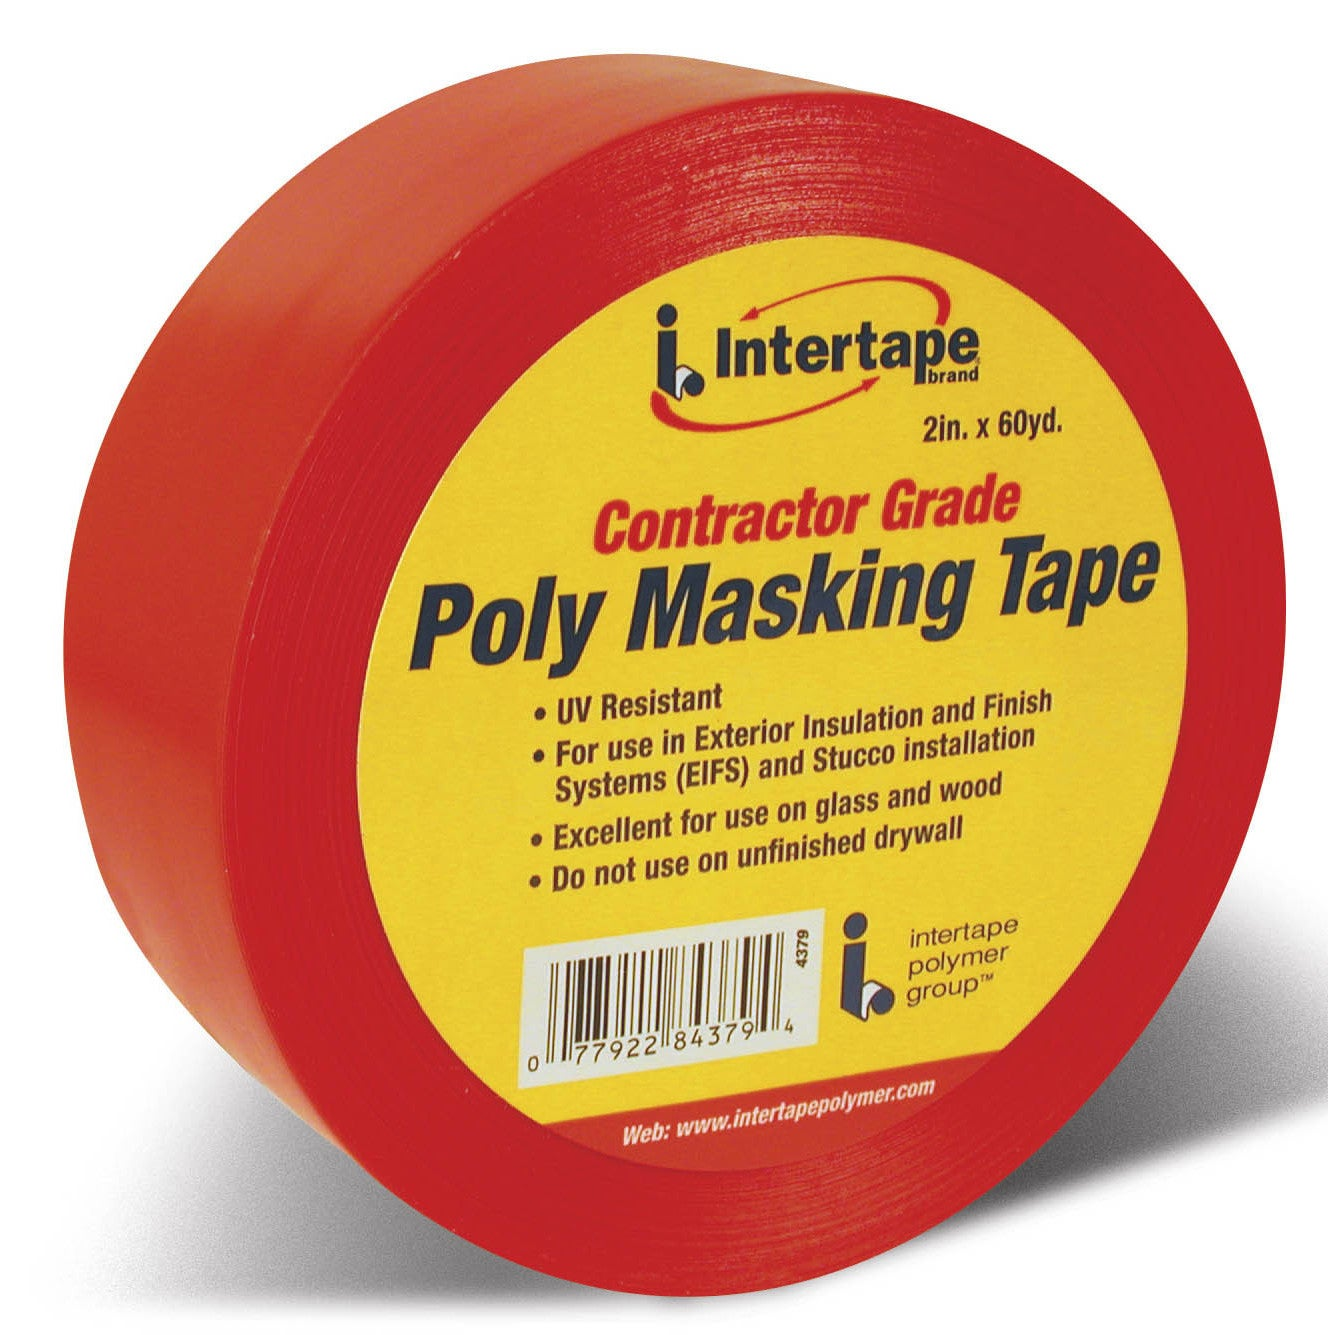 Intertape Intertape Polymer Group 4379 RED Red Contractor...